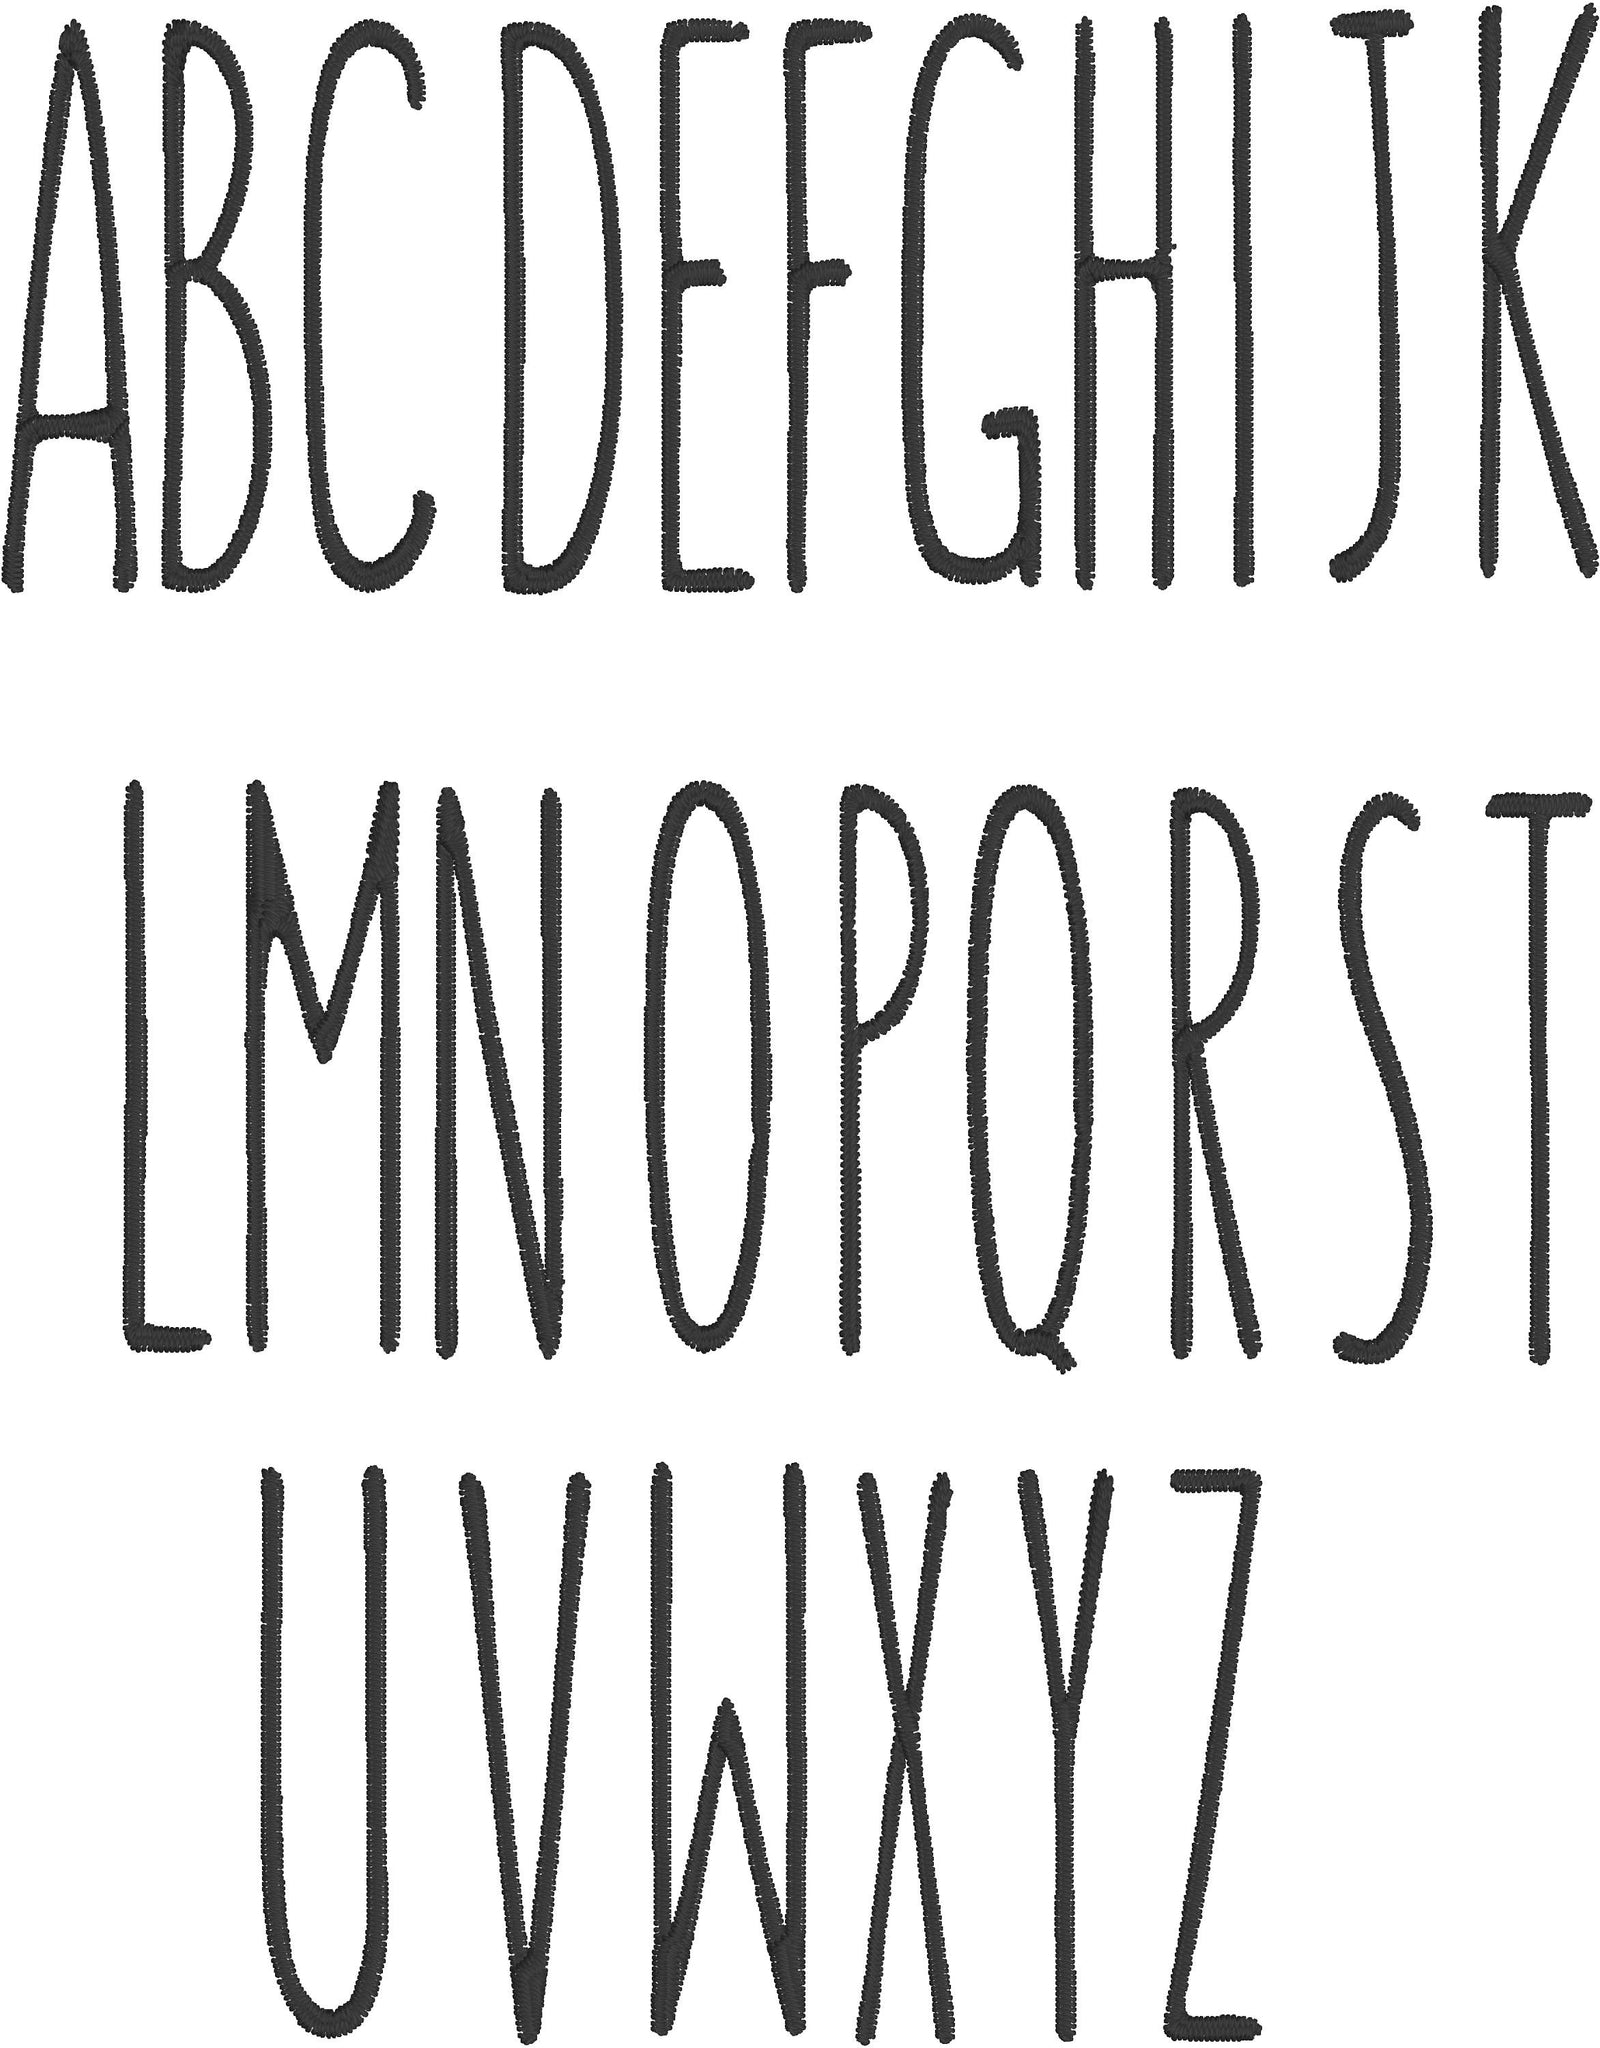 Tall Skinny Farmhouse Style Embroidery font- 1 and a half inches